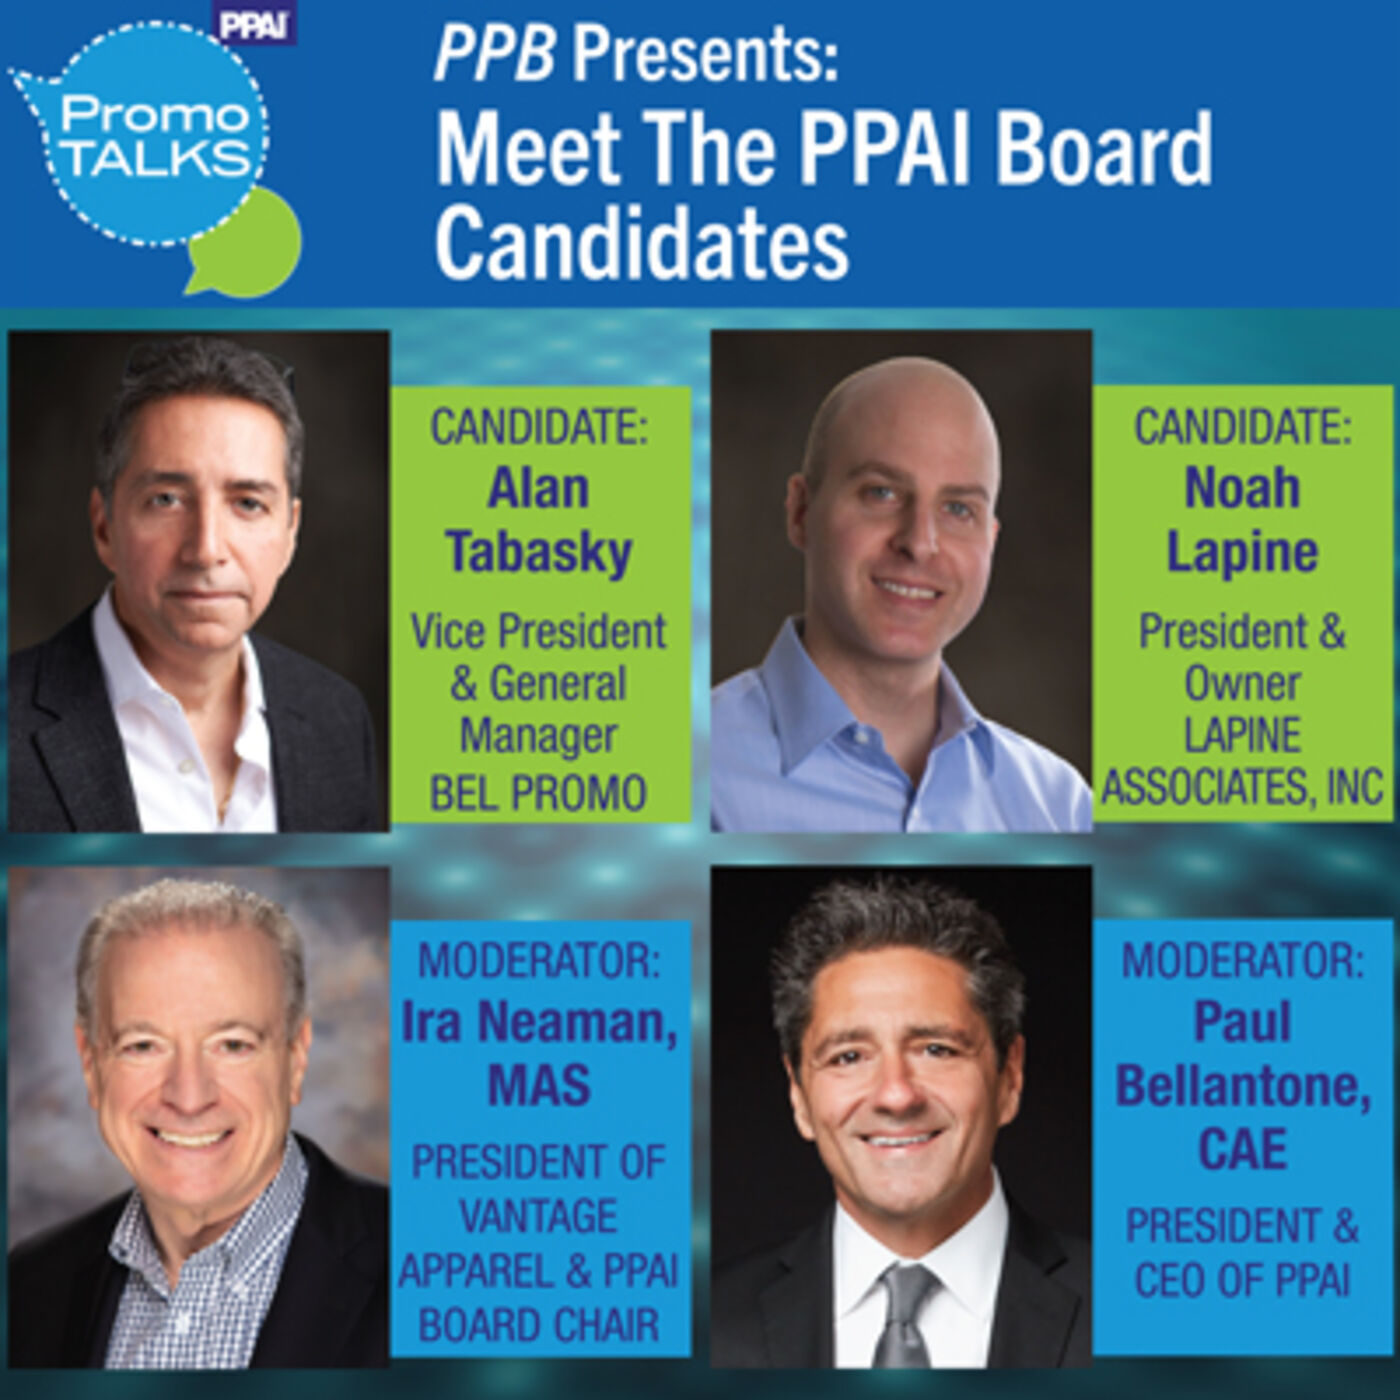 PPB Presents: Meet The PPAI Board Candidates